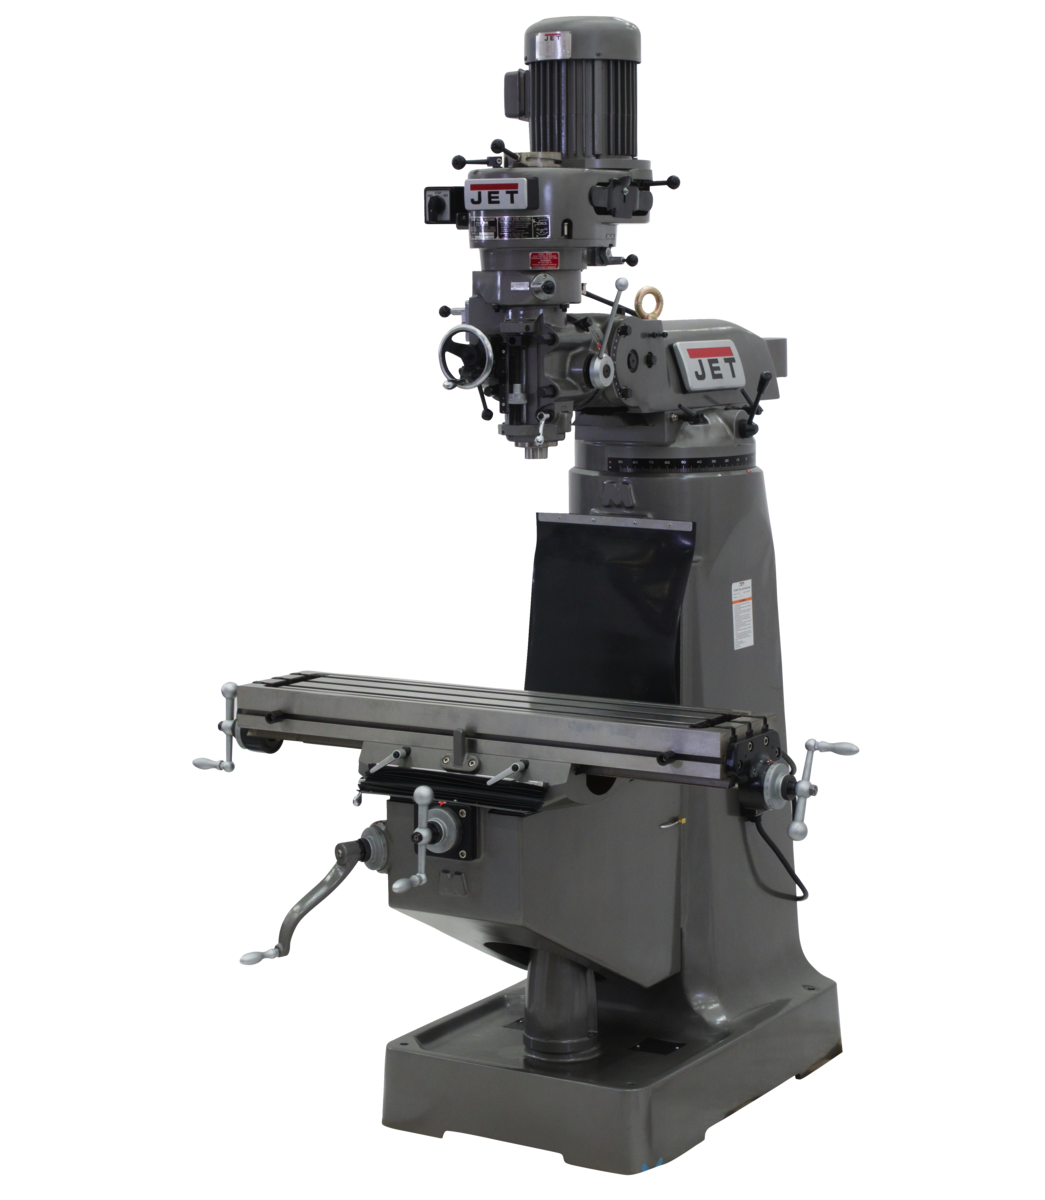 JTM-1 Mill With 3-Axis Newall DP500 DRO (Quill) With X-Axis Powerfeeds